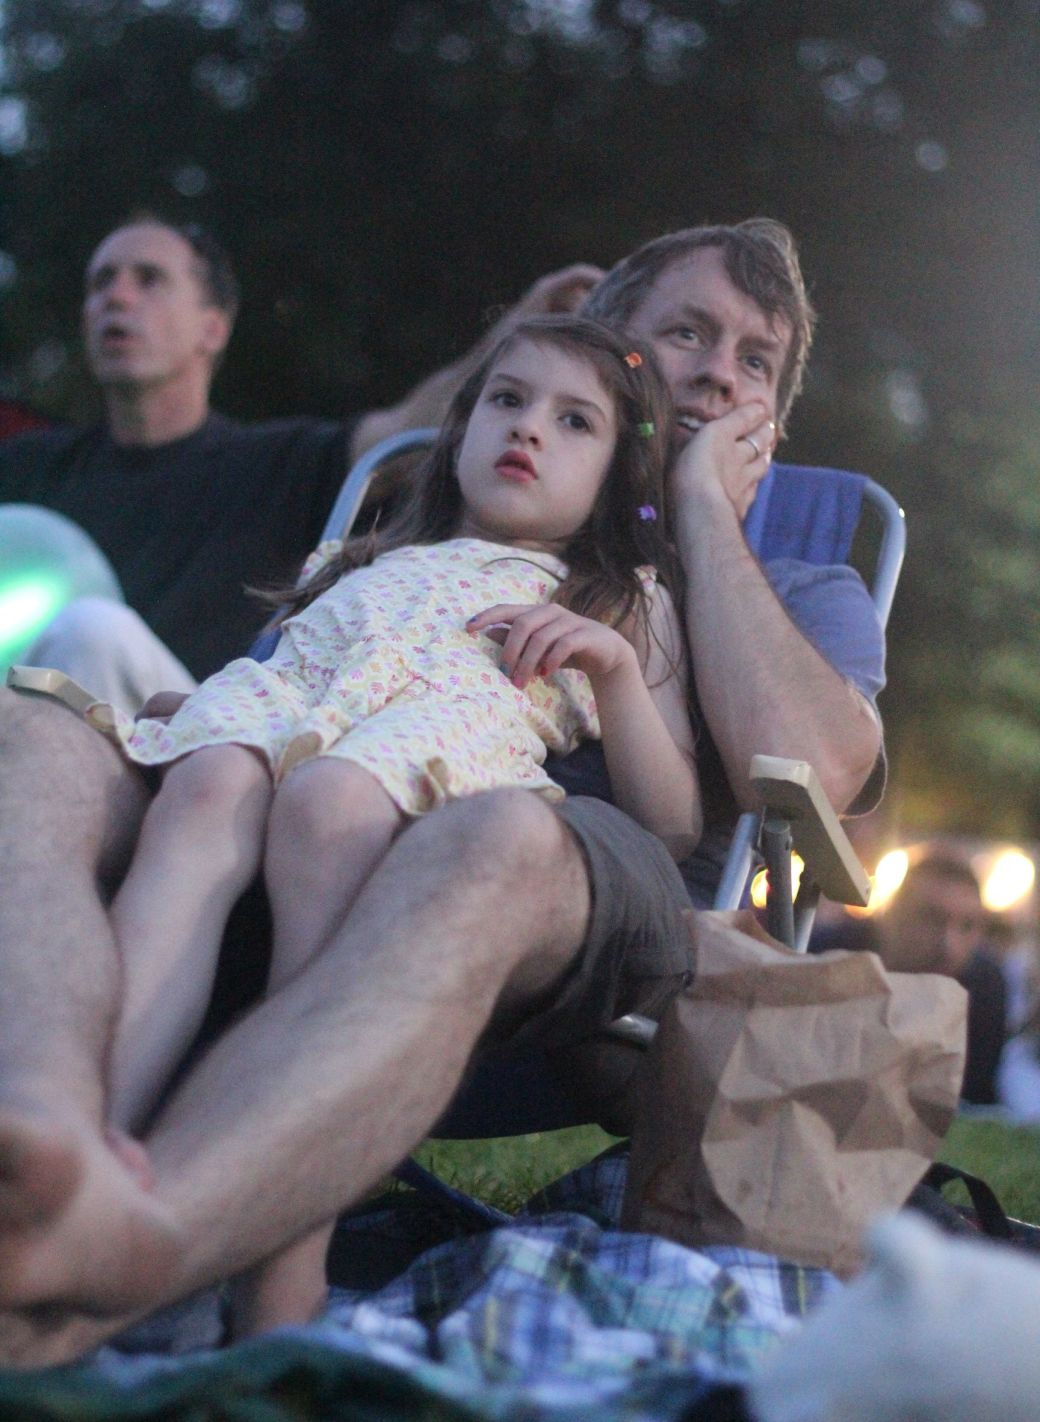 boston hatch shell night movie people father and daughter looking at the movie